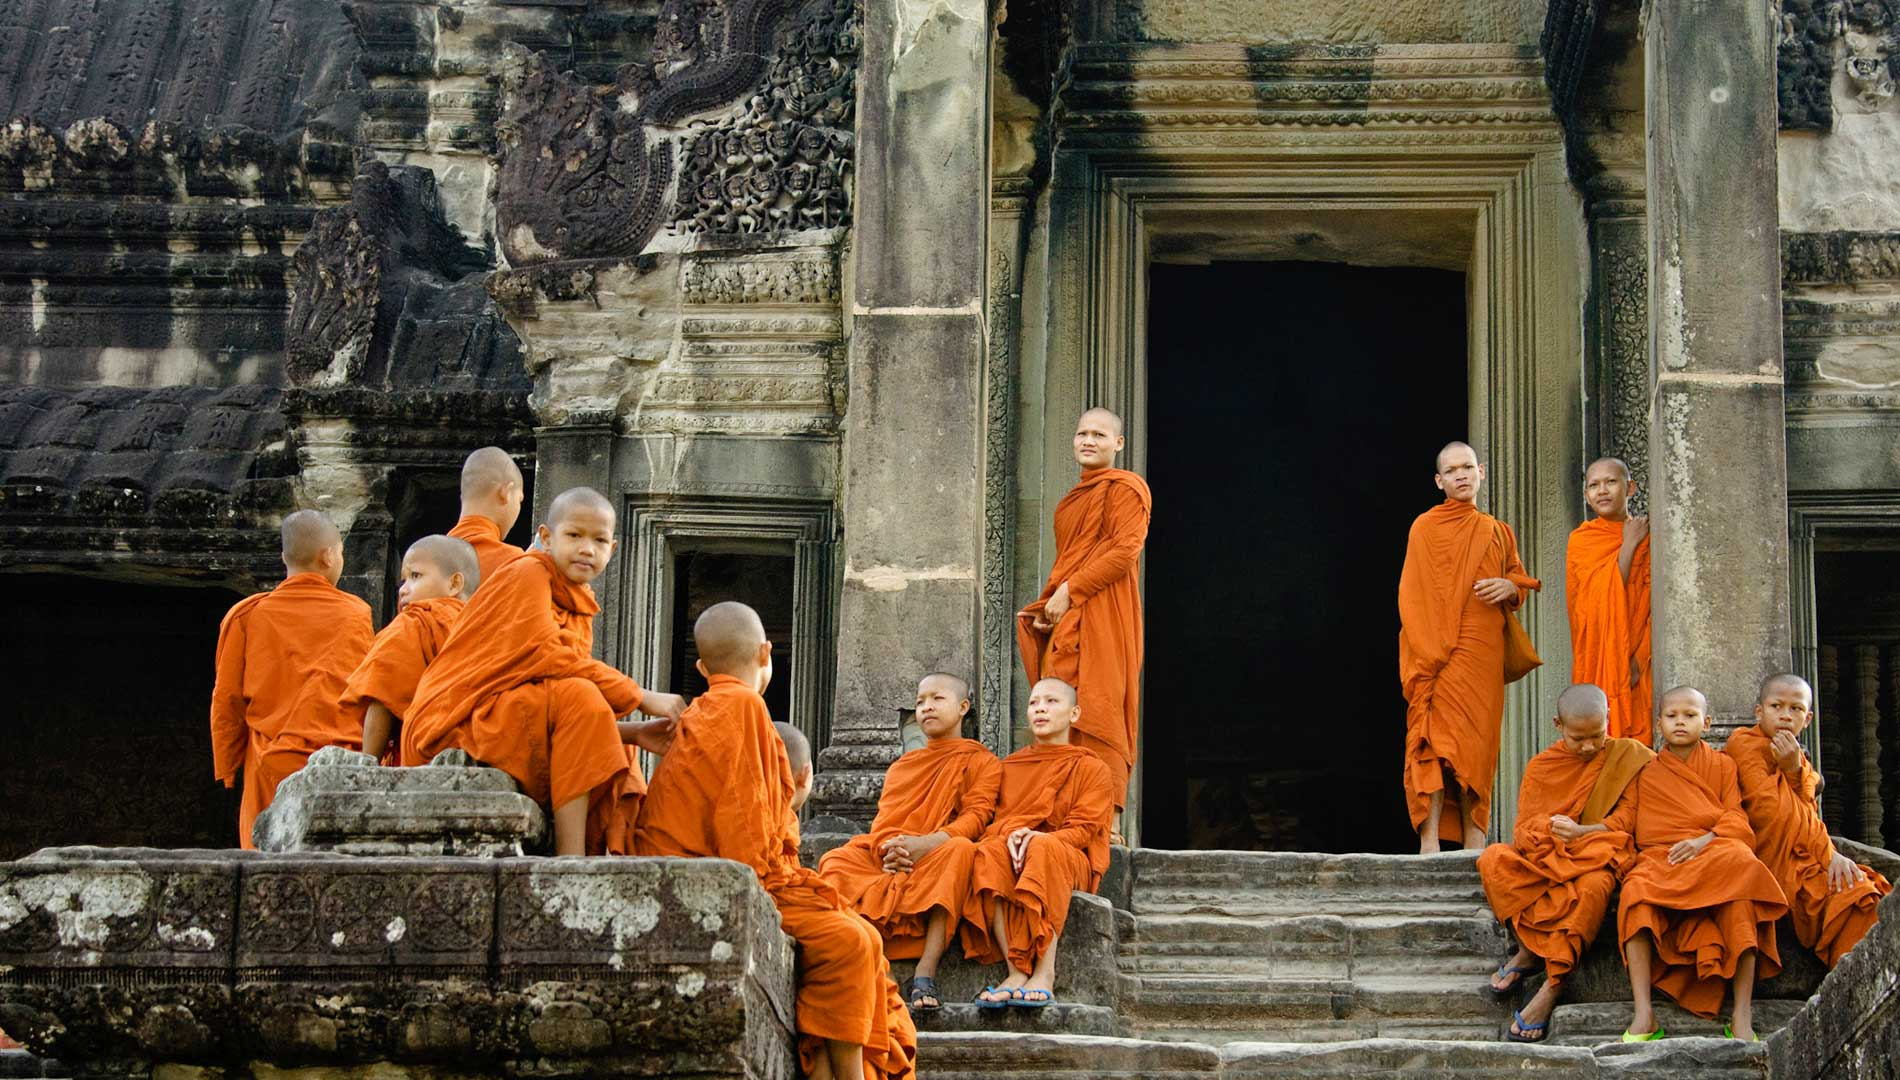 Monk at Angkor Wat Temple